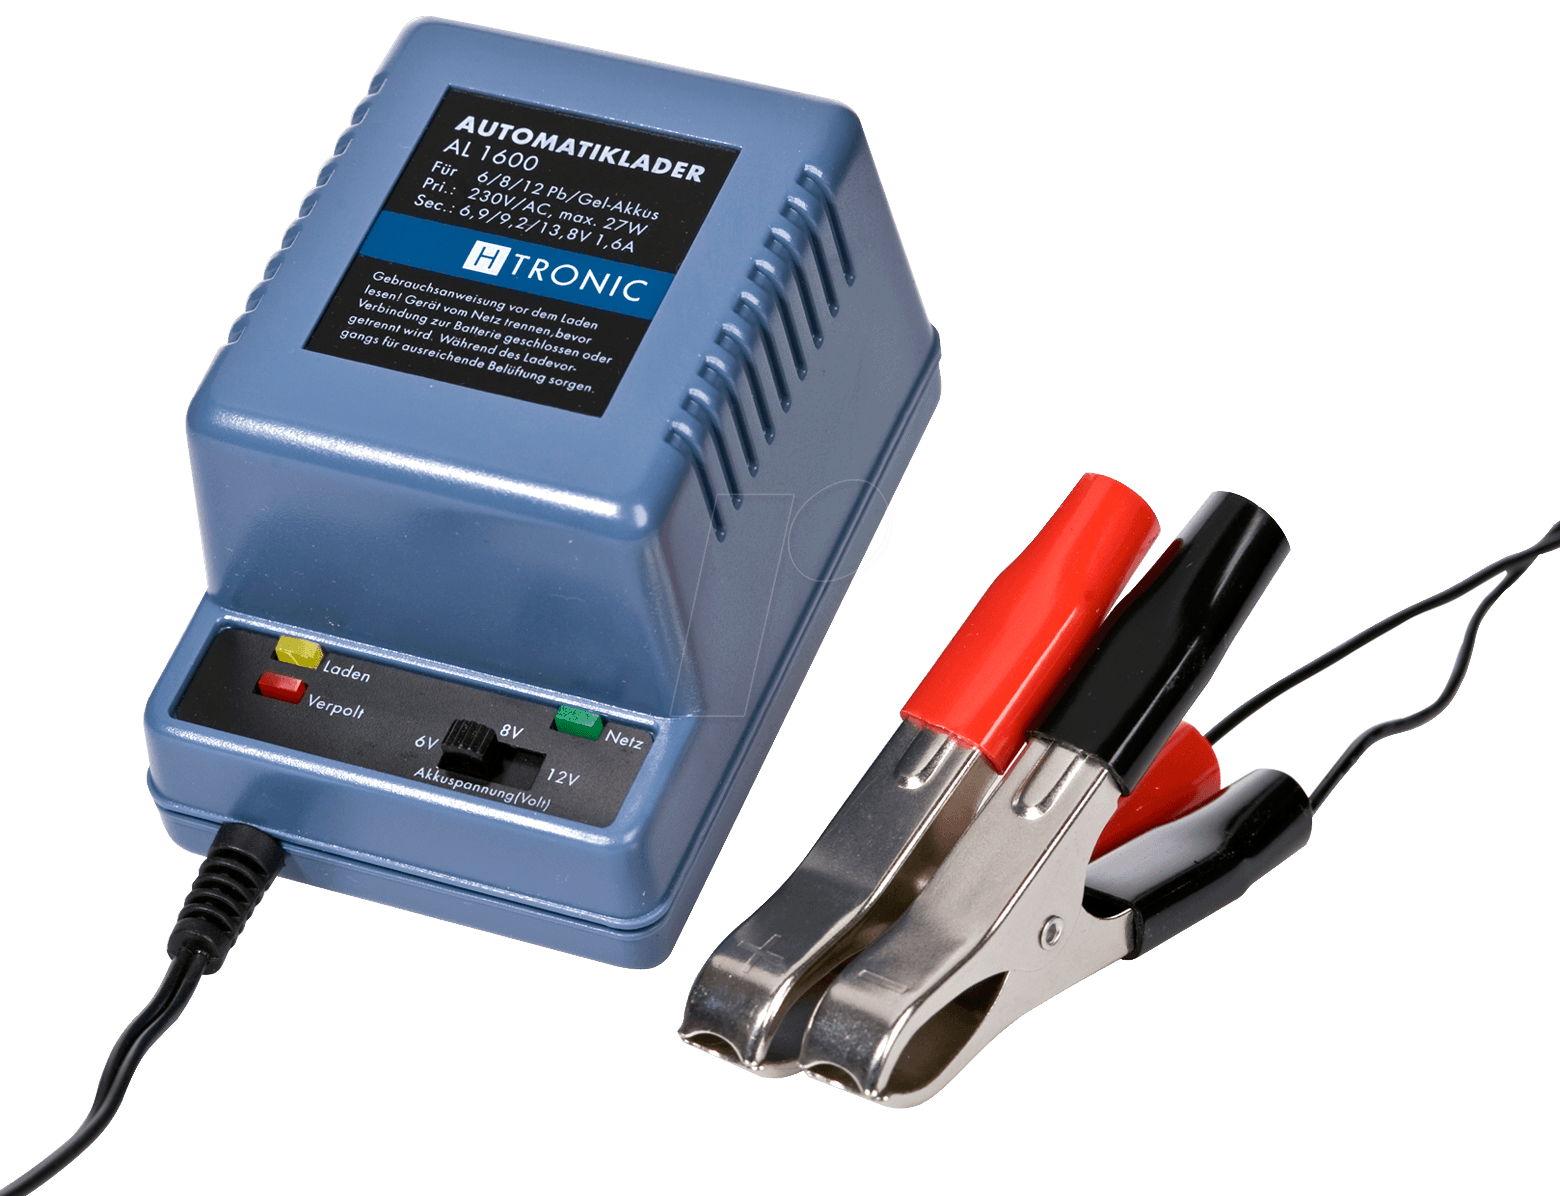 AL 1600 - AL 1600 automatic charger for 6 - 8 - 12 V